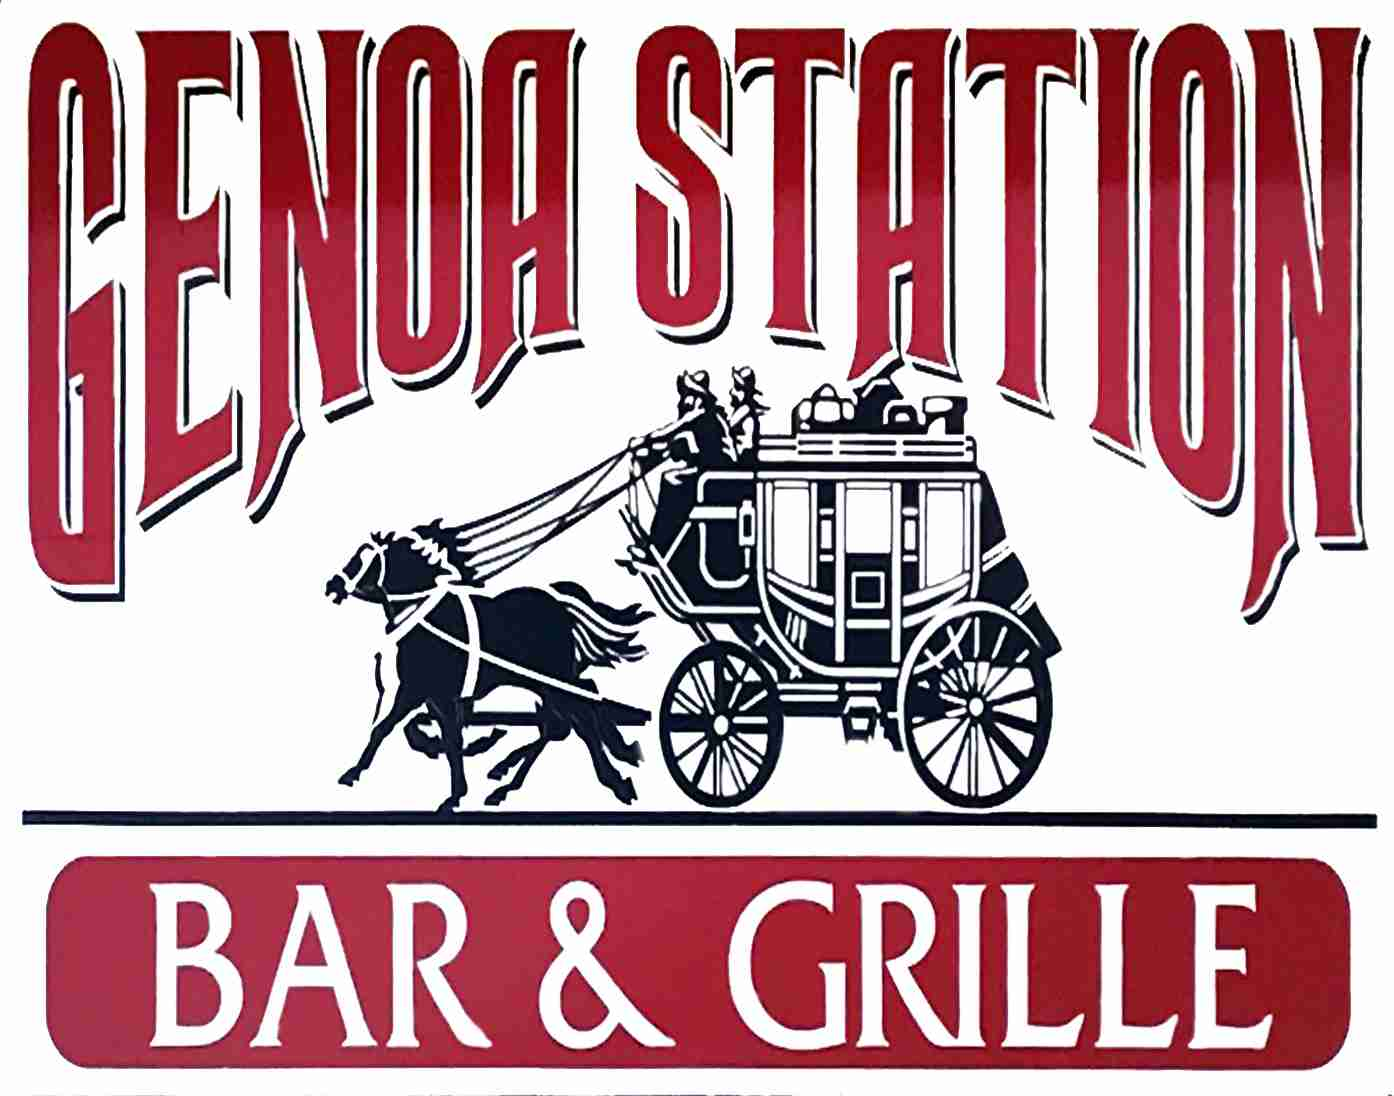 Genoa Station Bar and Grill Restaurant